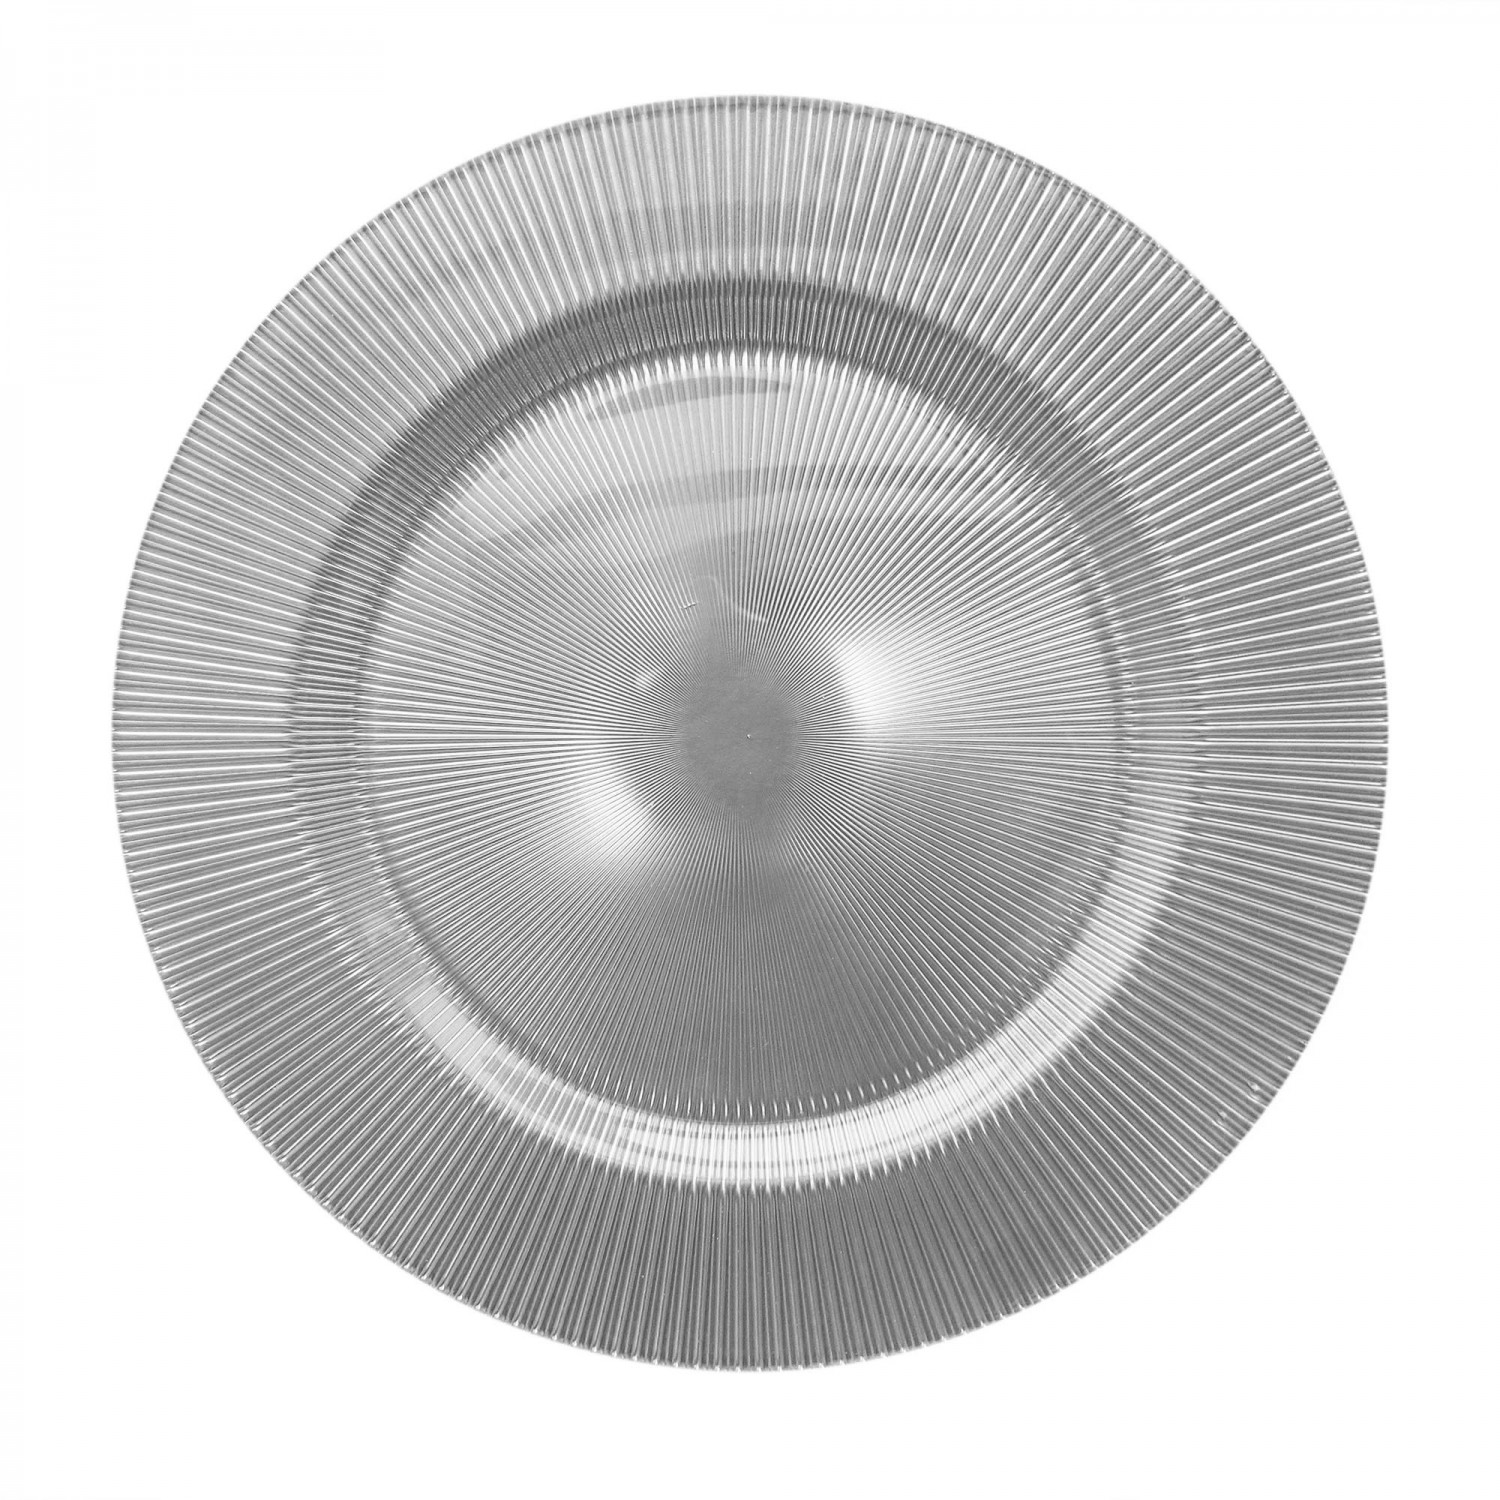 The Jay Companies 1470346 Round Sunray Silver Glass Charger Plate 13""